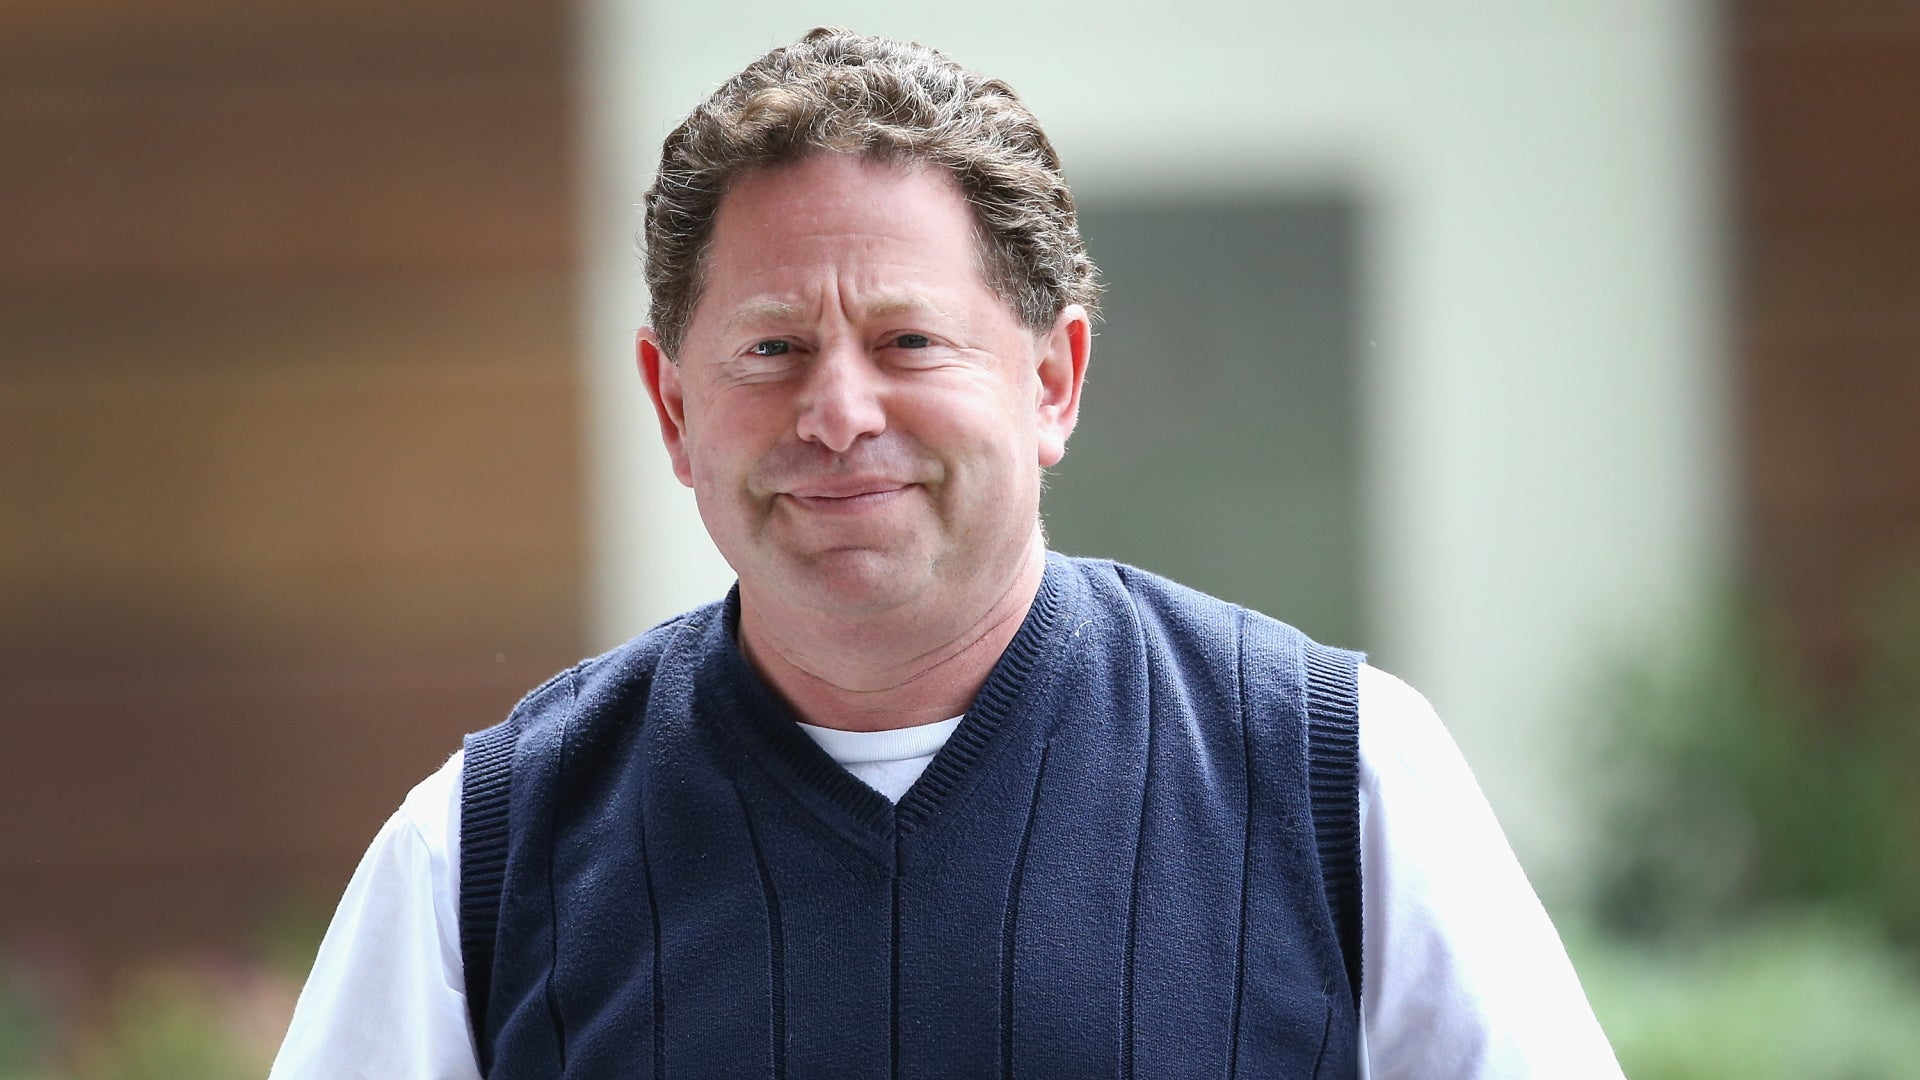 Activision Blizzard CEO Bobby Kotick Gave 10,000 Employees His Personal Phone Number